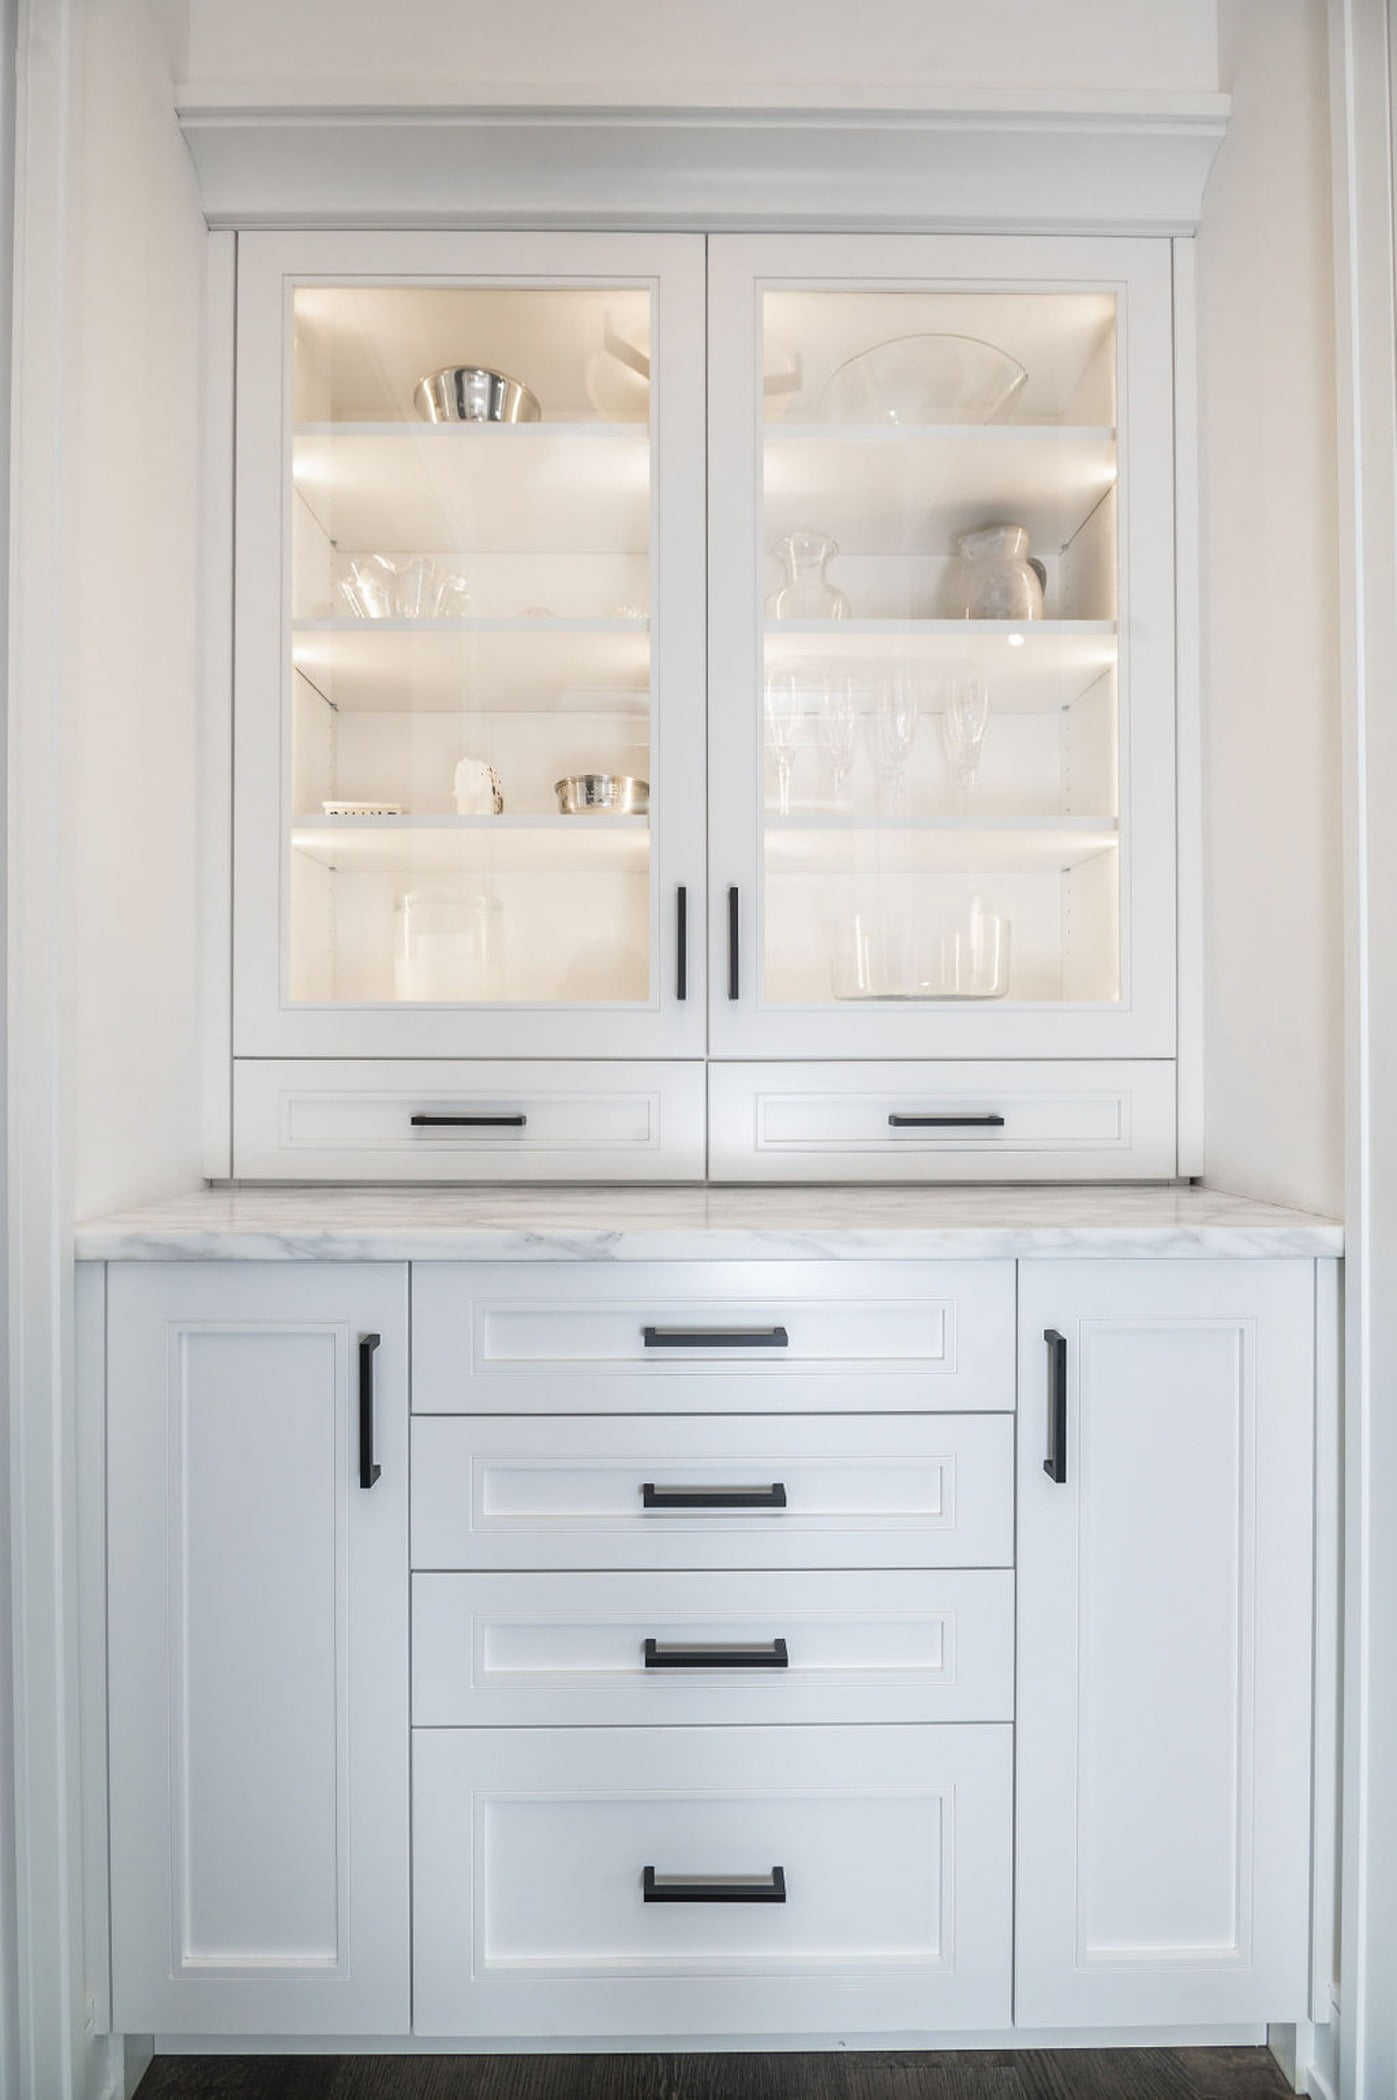 Transitional dining pantry counter with custom white cabinetry and marble countertops